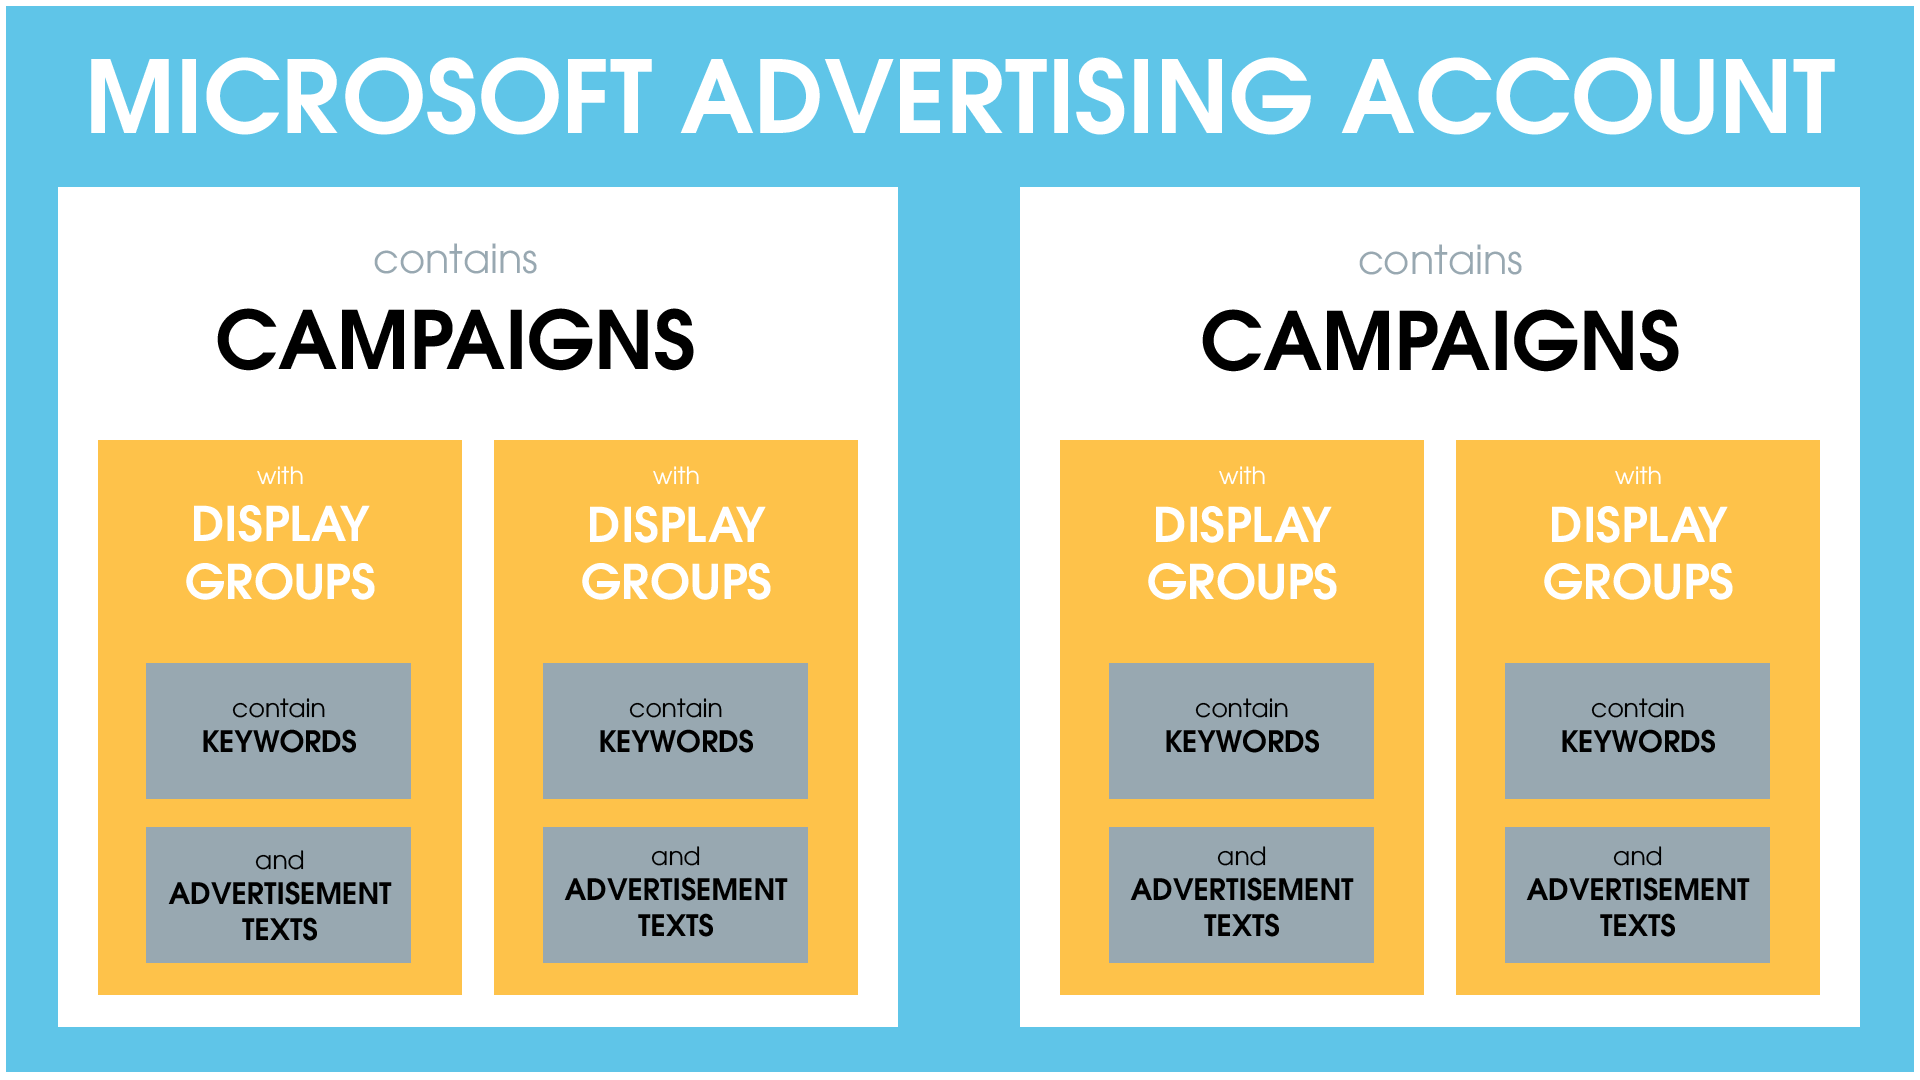 Structure of the Microsoft Advertising account: The account contains campaigns, which are the overarching level for all ad groups. The ad groups in turn contain important keywords and the appropriate ad texts.